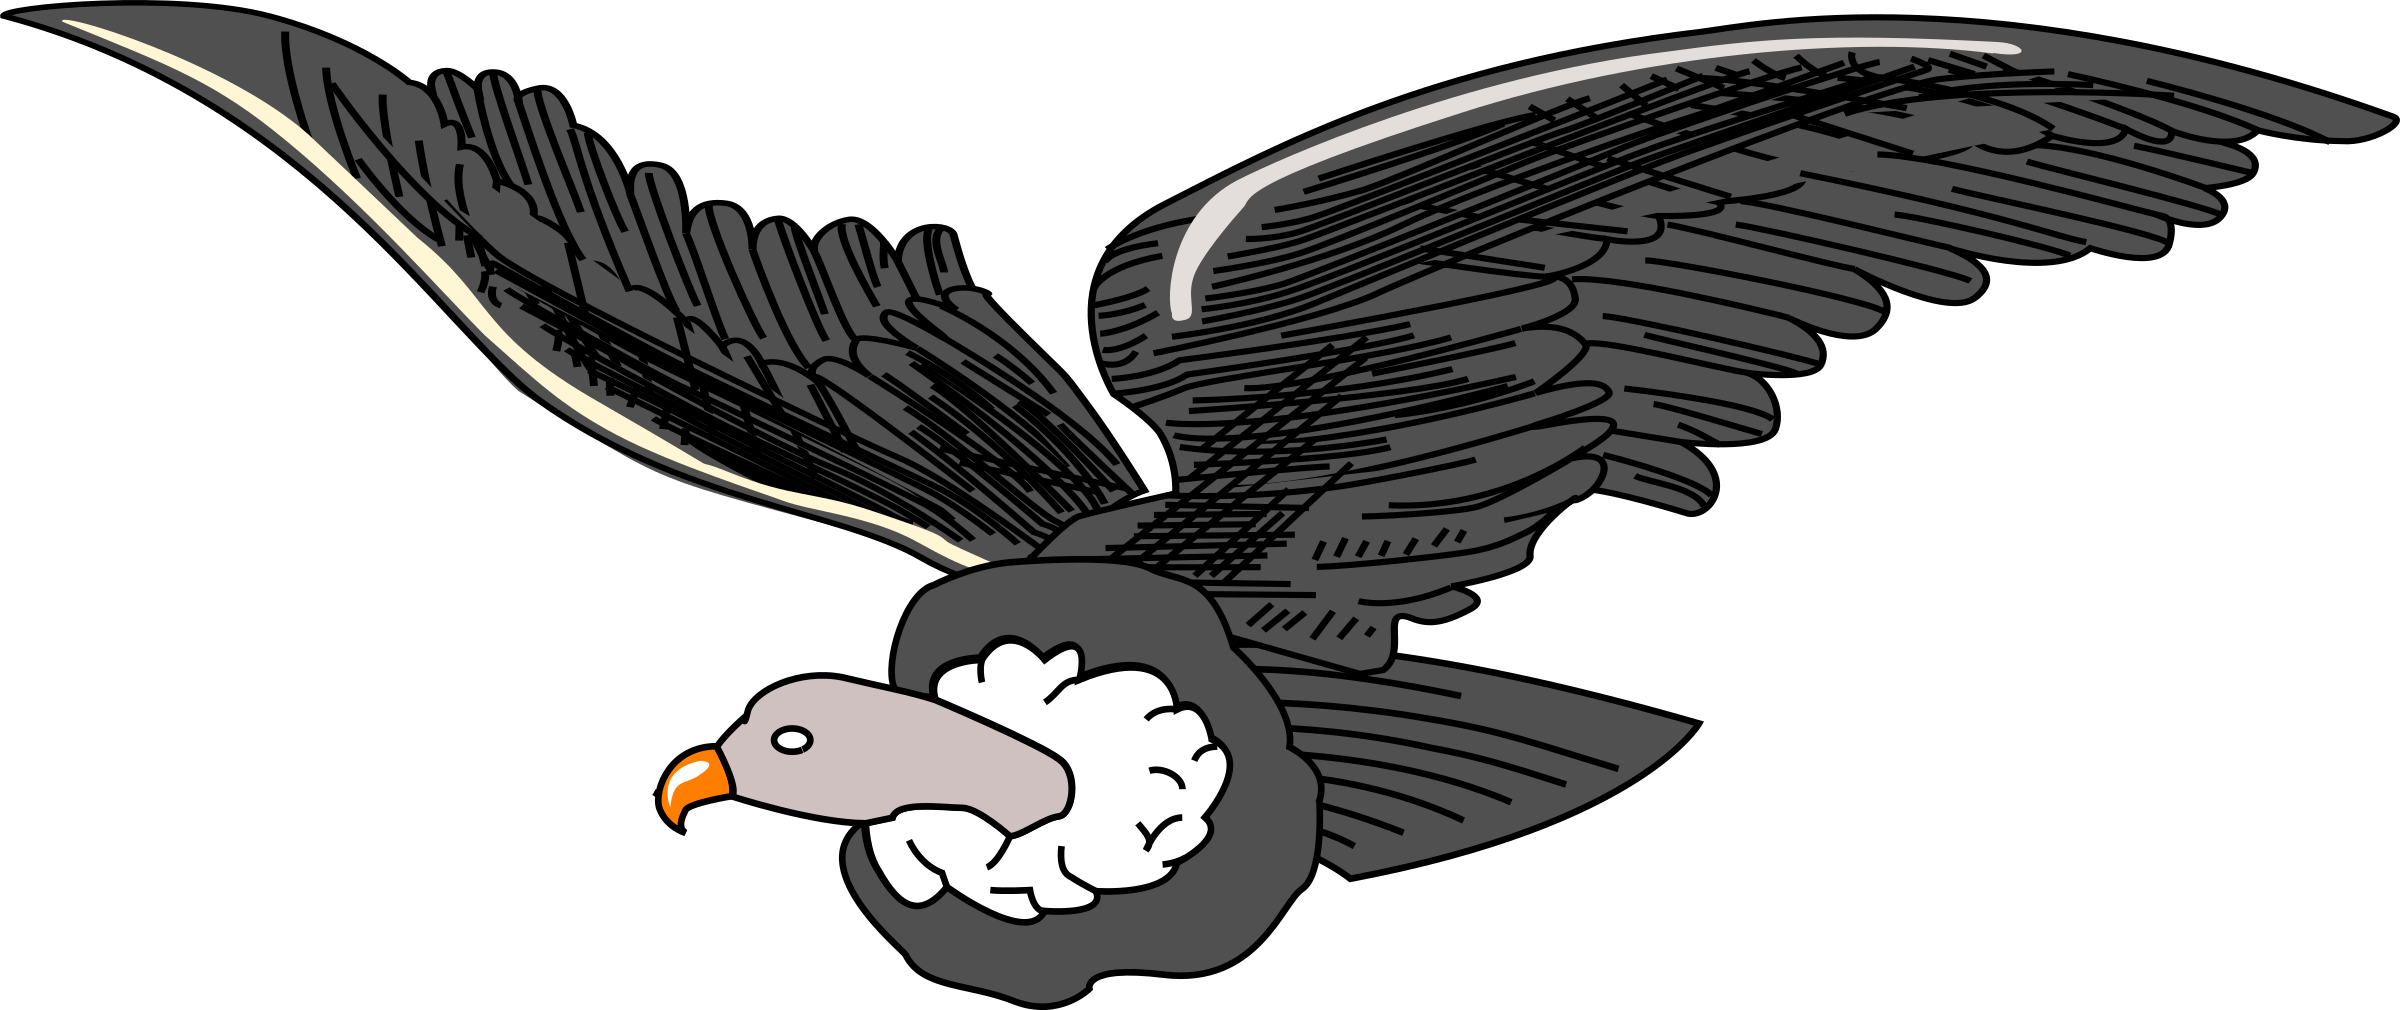 Clipart big image png. Condor drawing arm image freeuse library